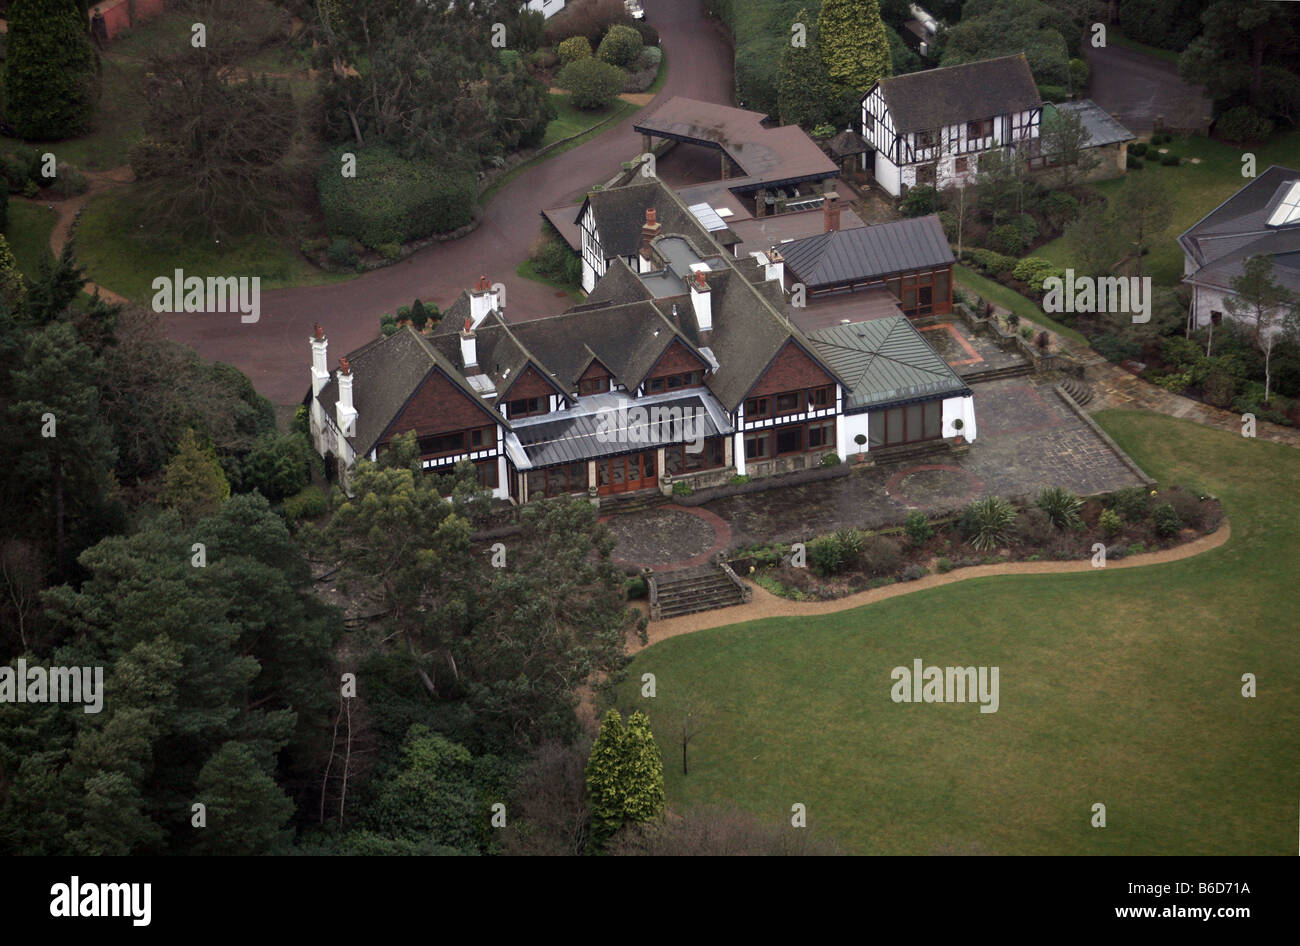 House of Roman Abramovich, Fyning Hall Estate, West Sussex